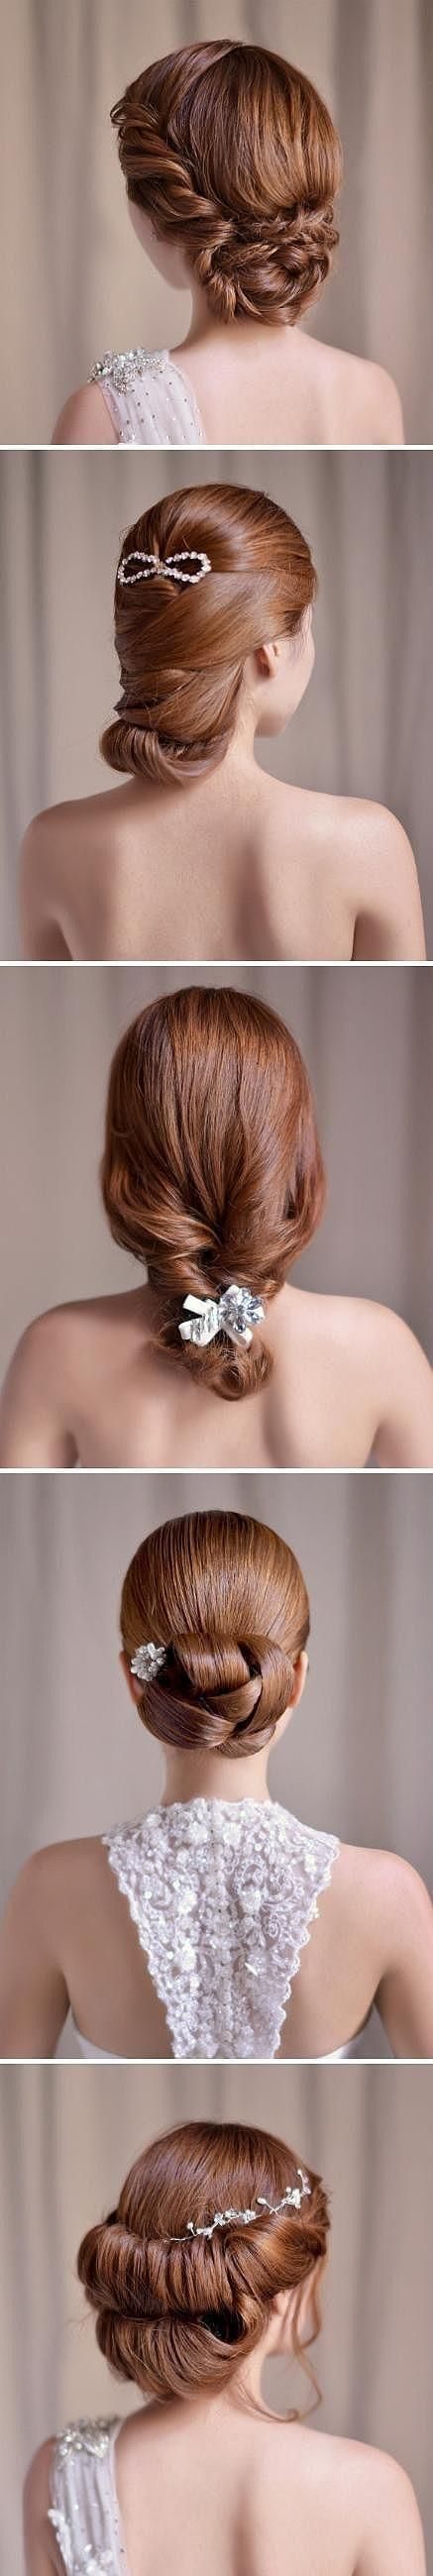 best anna martinez images on pinterest bridal hairstyles long